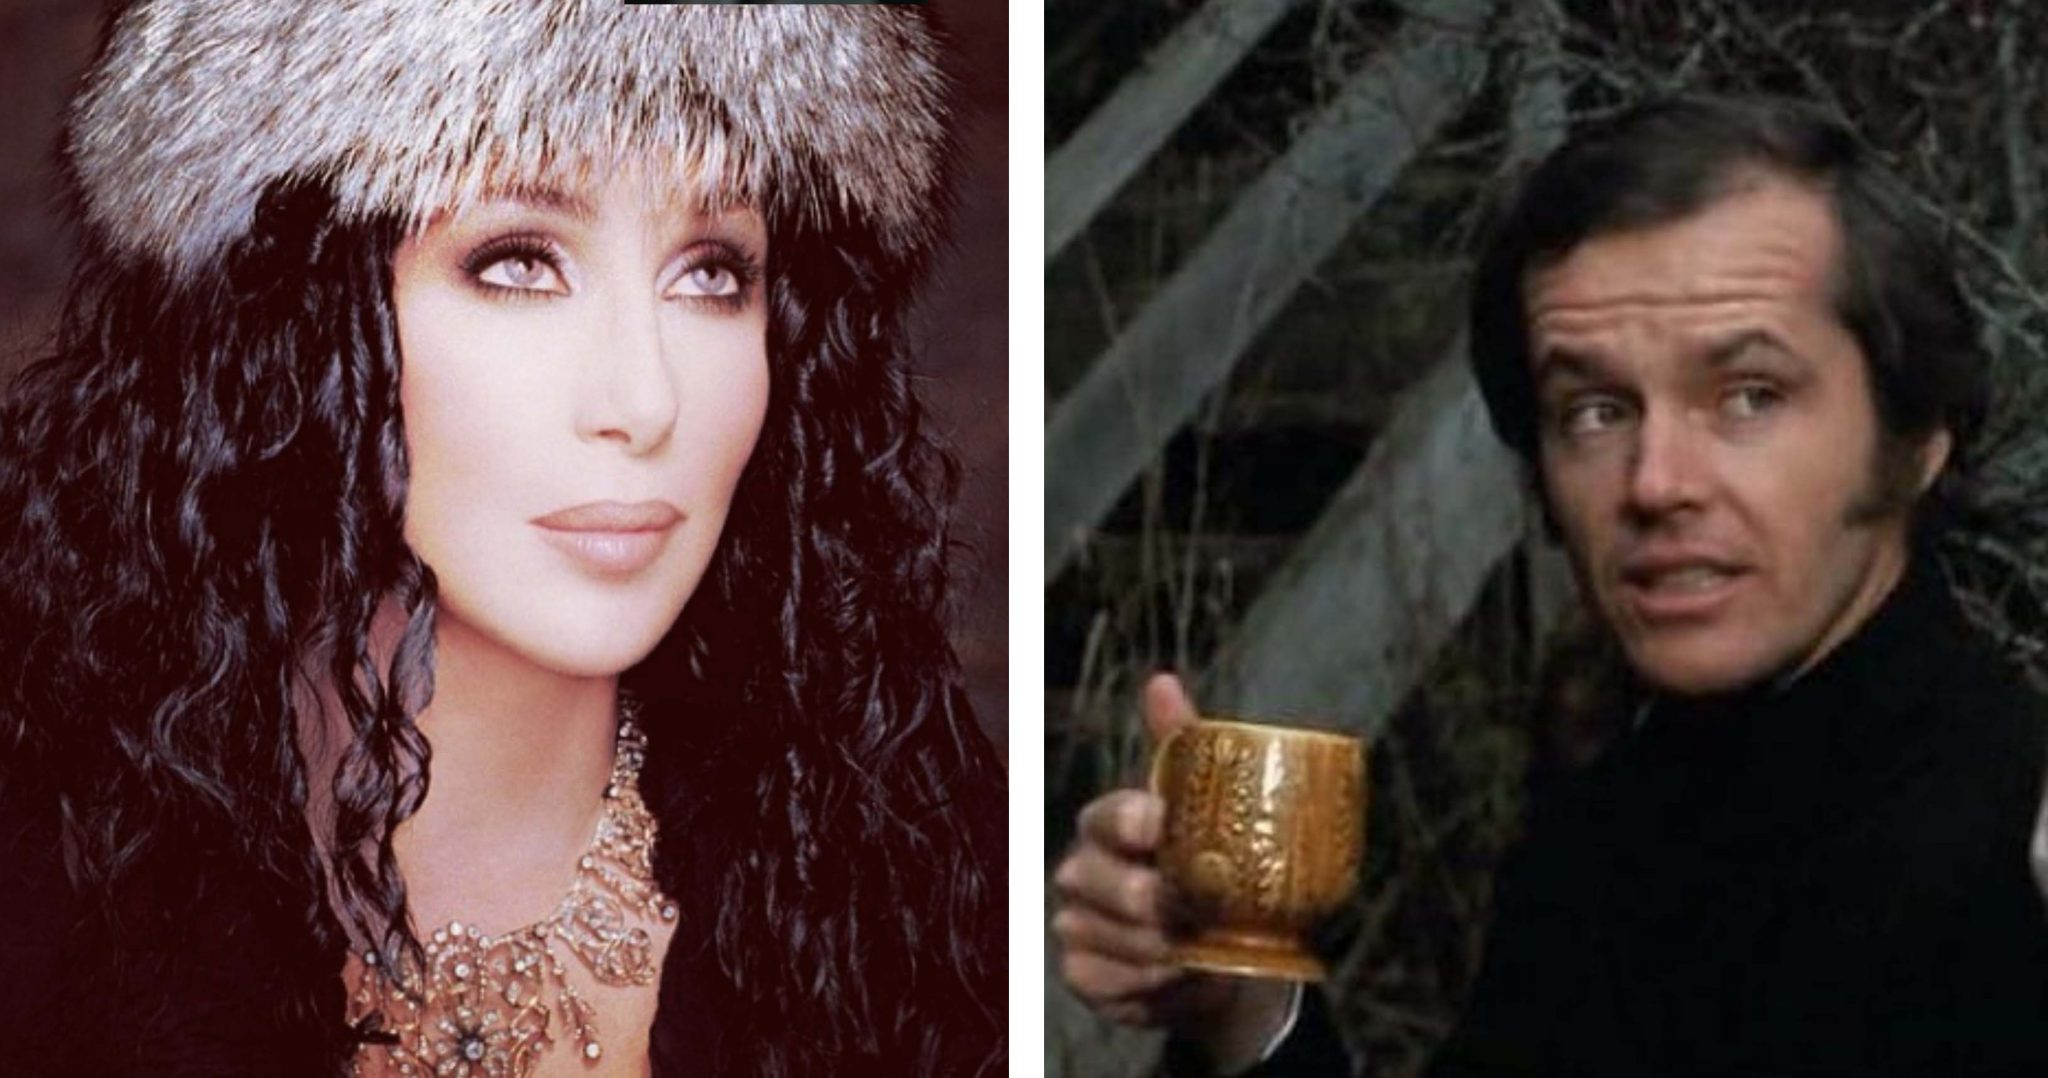 George Miller And Jack Nicholson Called Cher 'Too Old' On Her 40th Birthday